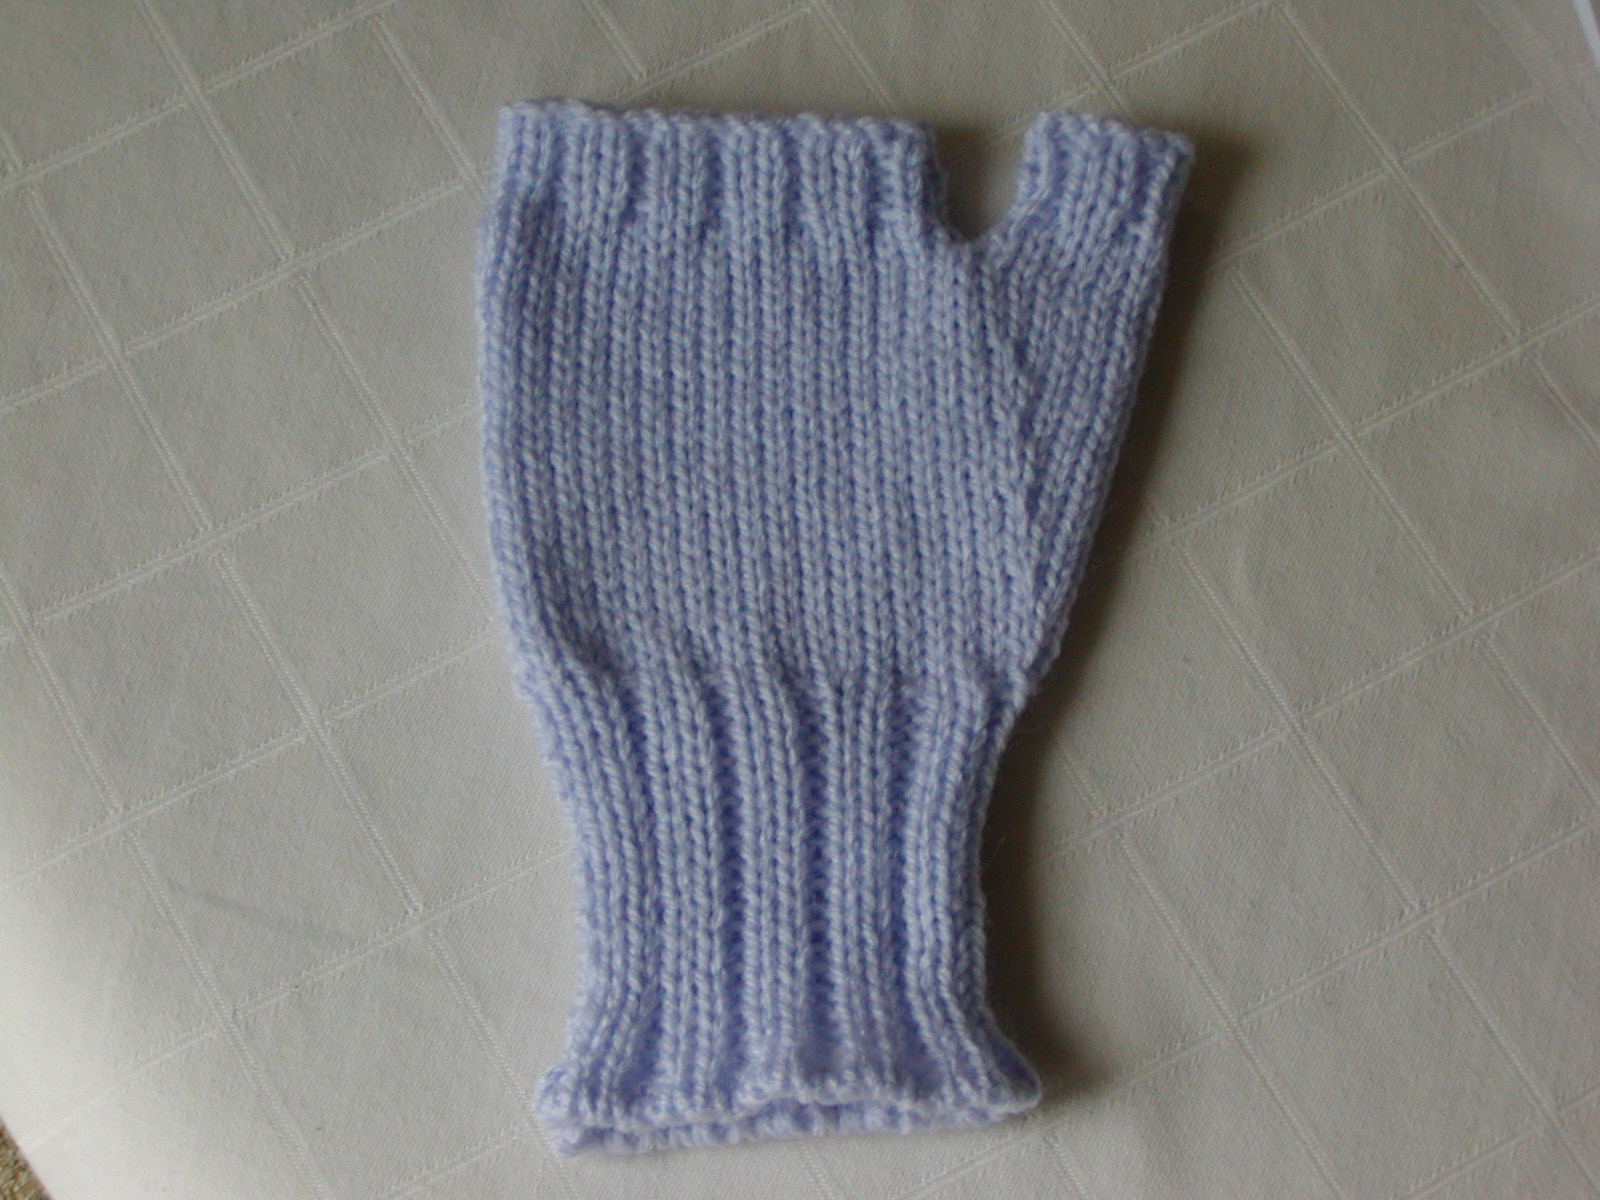 Knit Fingerless Gloves Pattern : Addicted to Machine Knitting: Machine Knitting Patterns